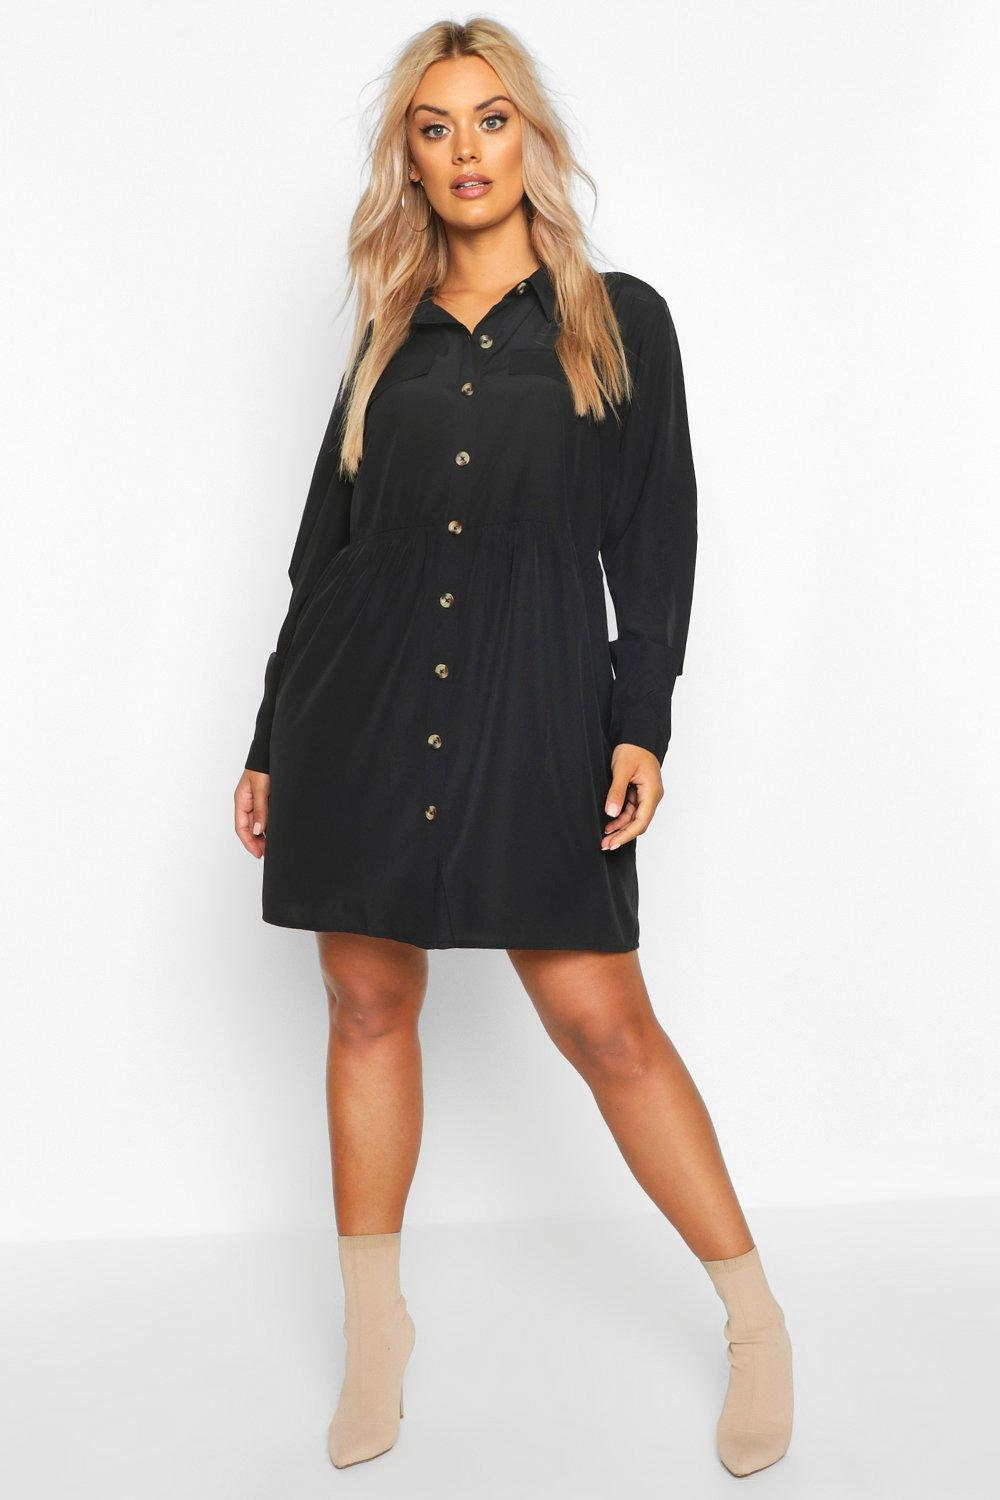 boohoo Womens Plus Button Through Smock Shirt Dress - Black - 20, Black